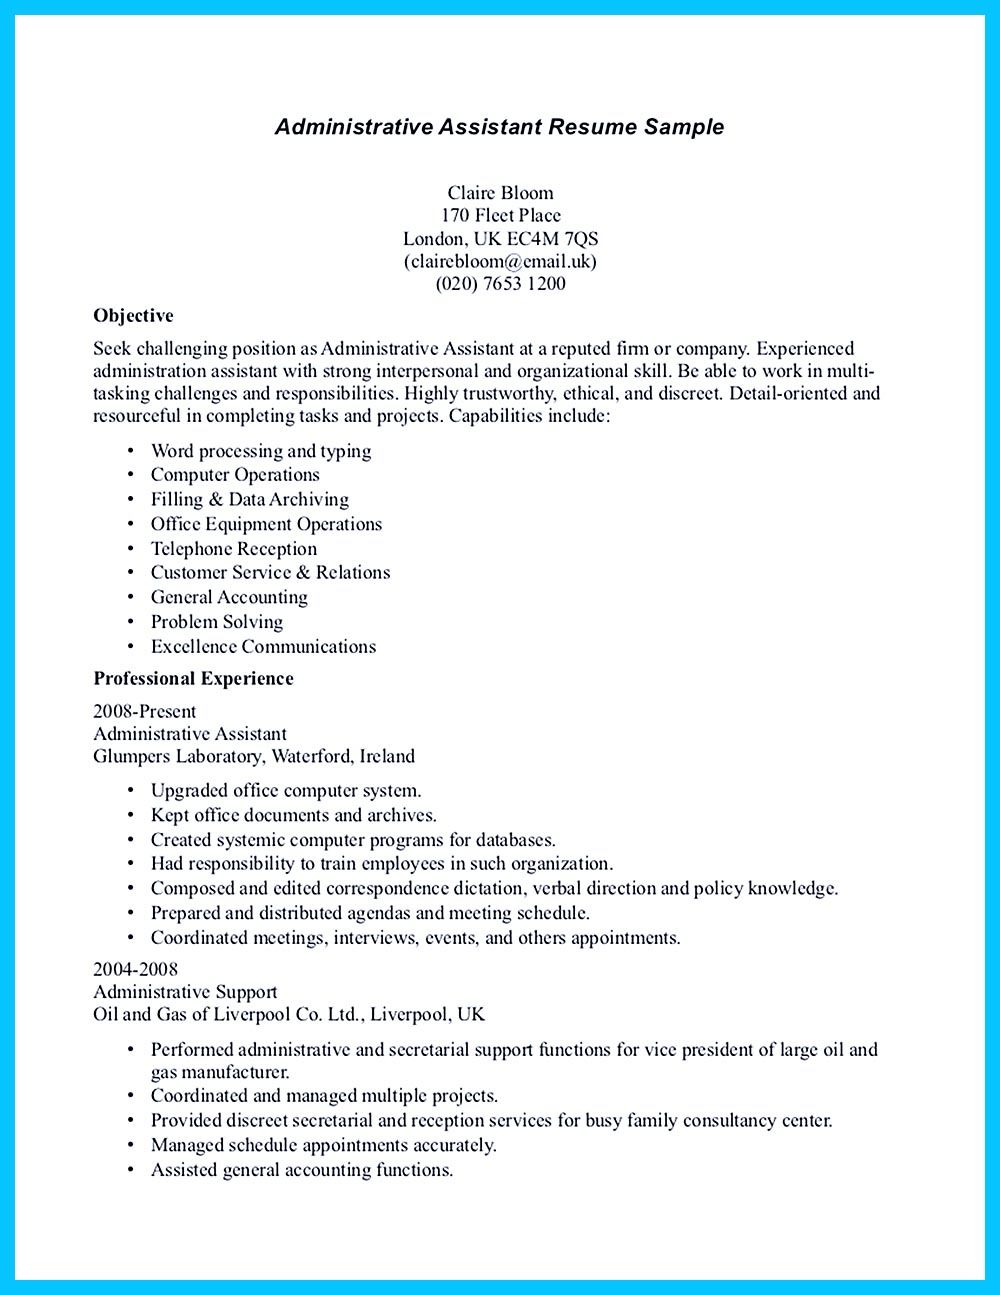 Administrative Assistant In Writing Entry Level Administrative Assistant Resume You Need